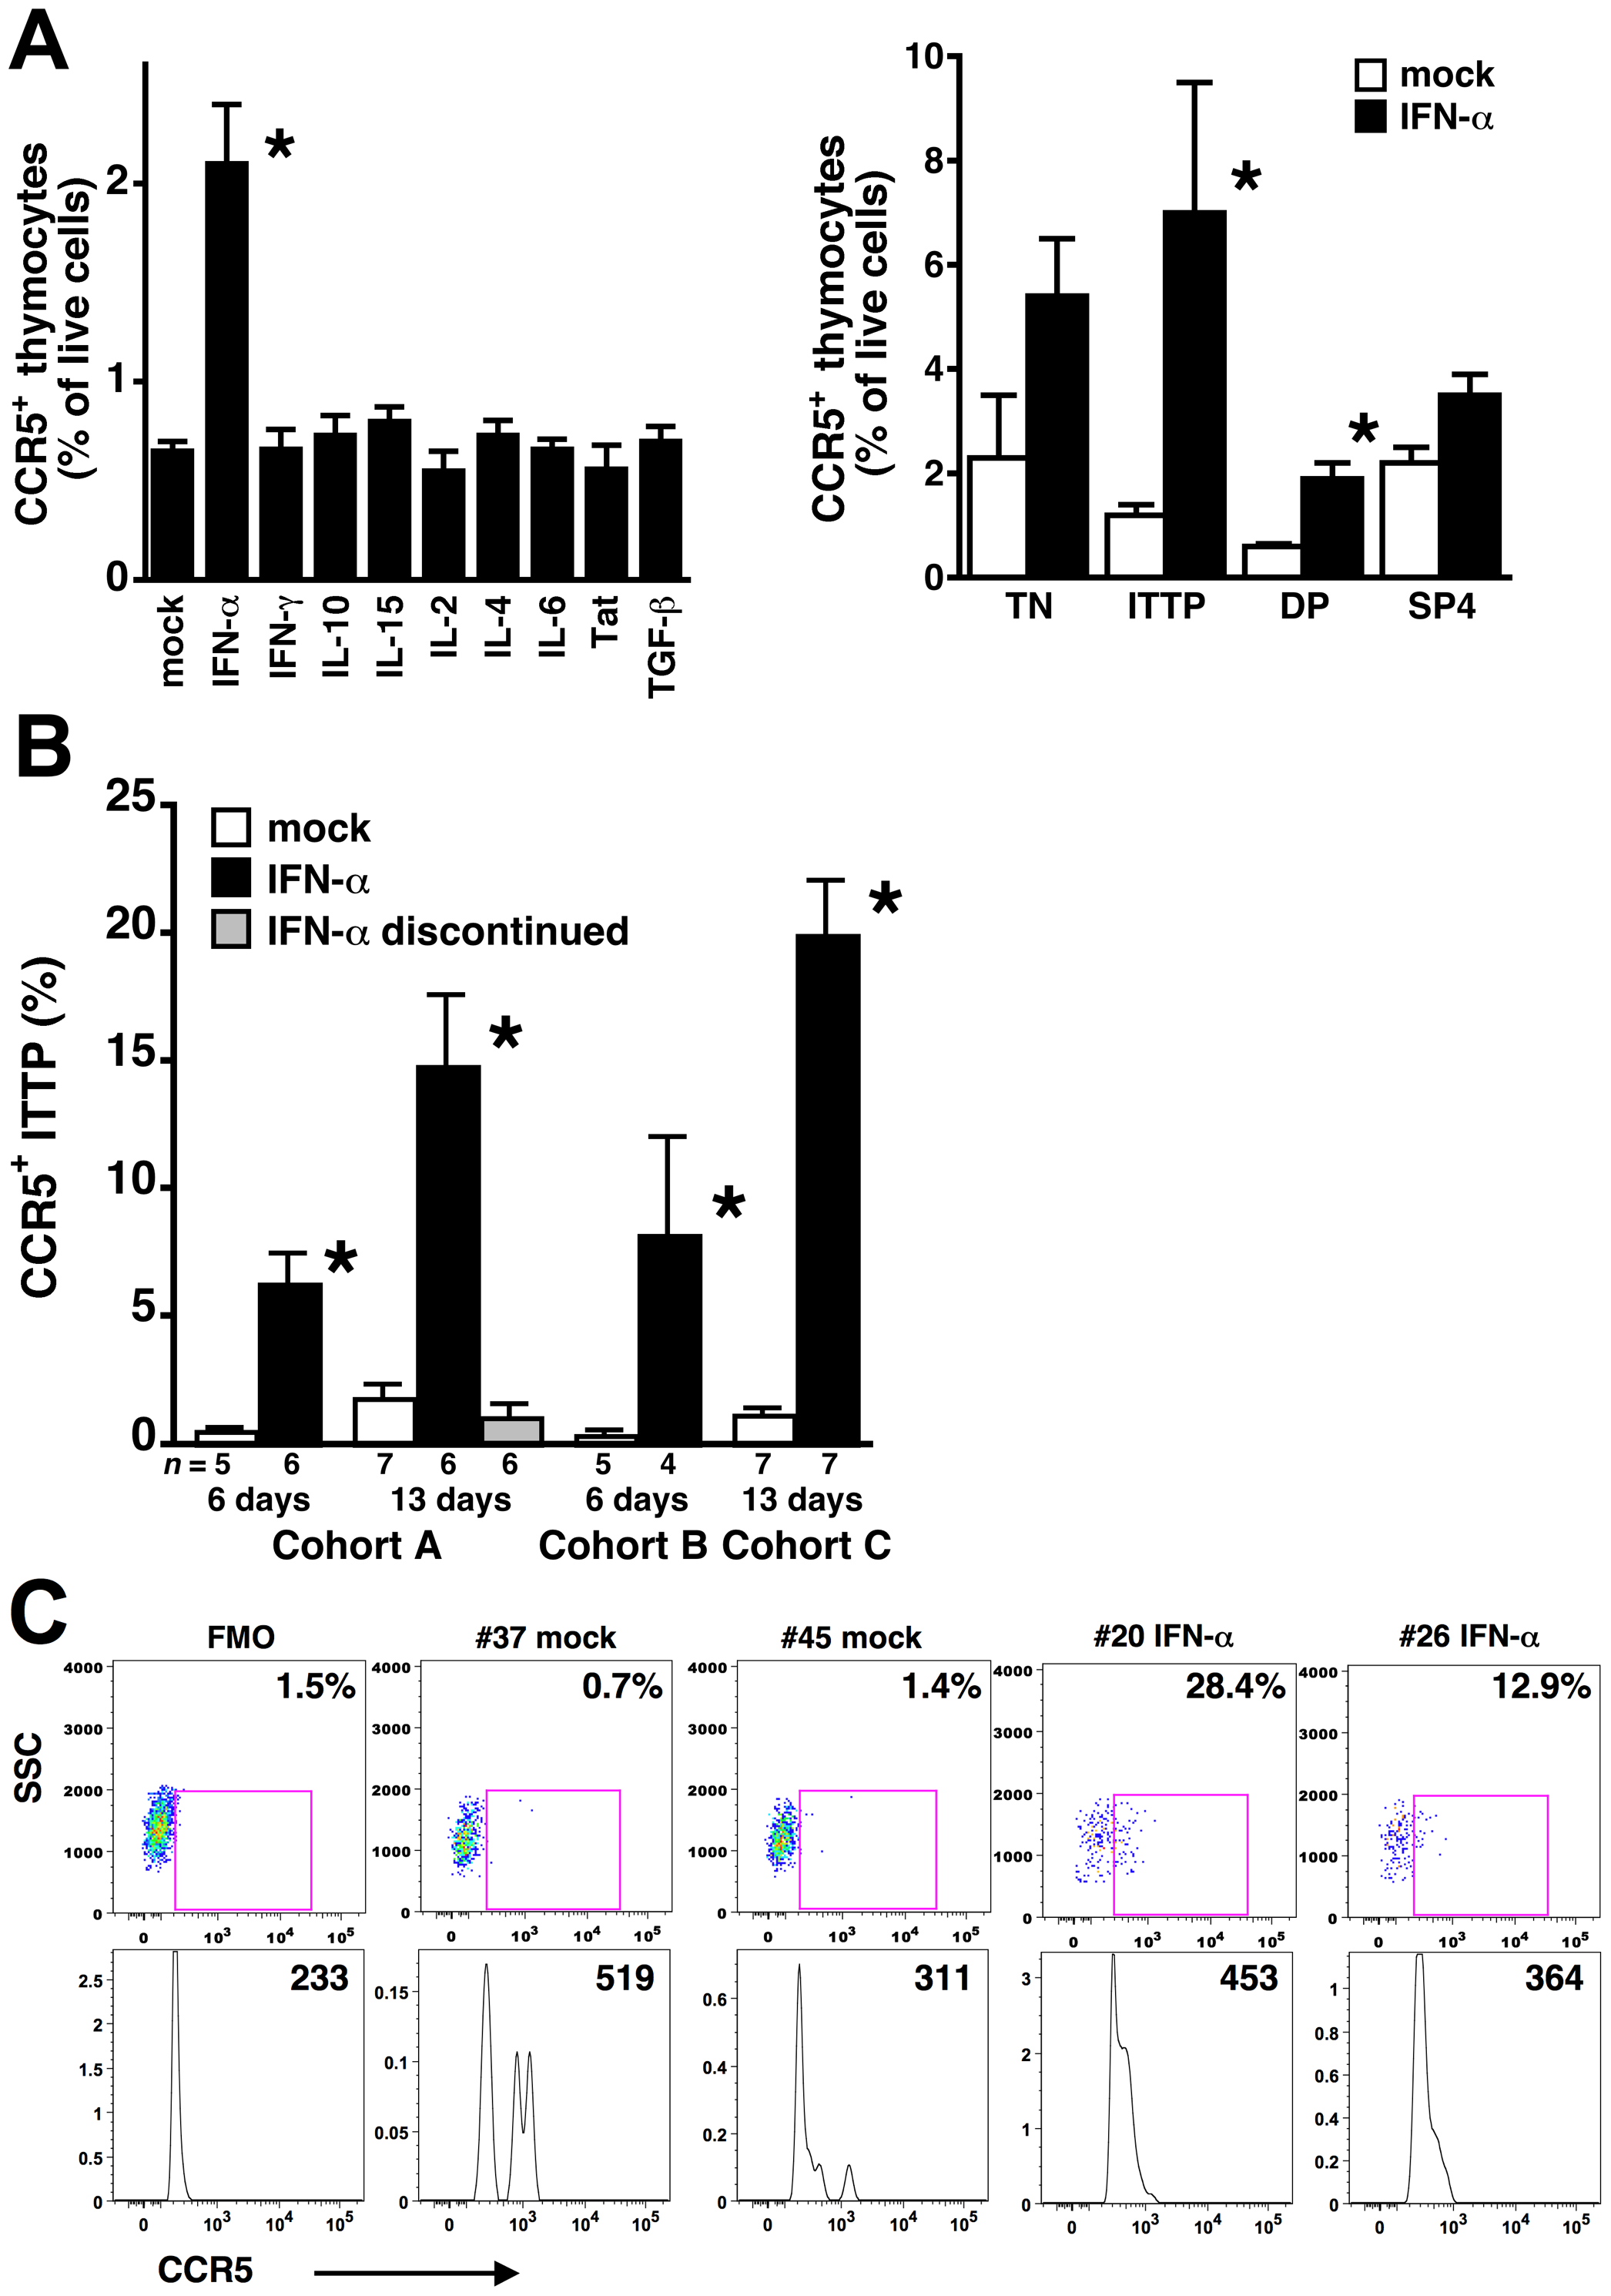 IFN-α induces CCR5 expression on thymocyte progenitors both in vitro and in vivo.